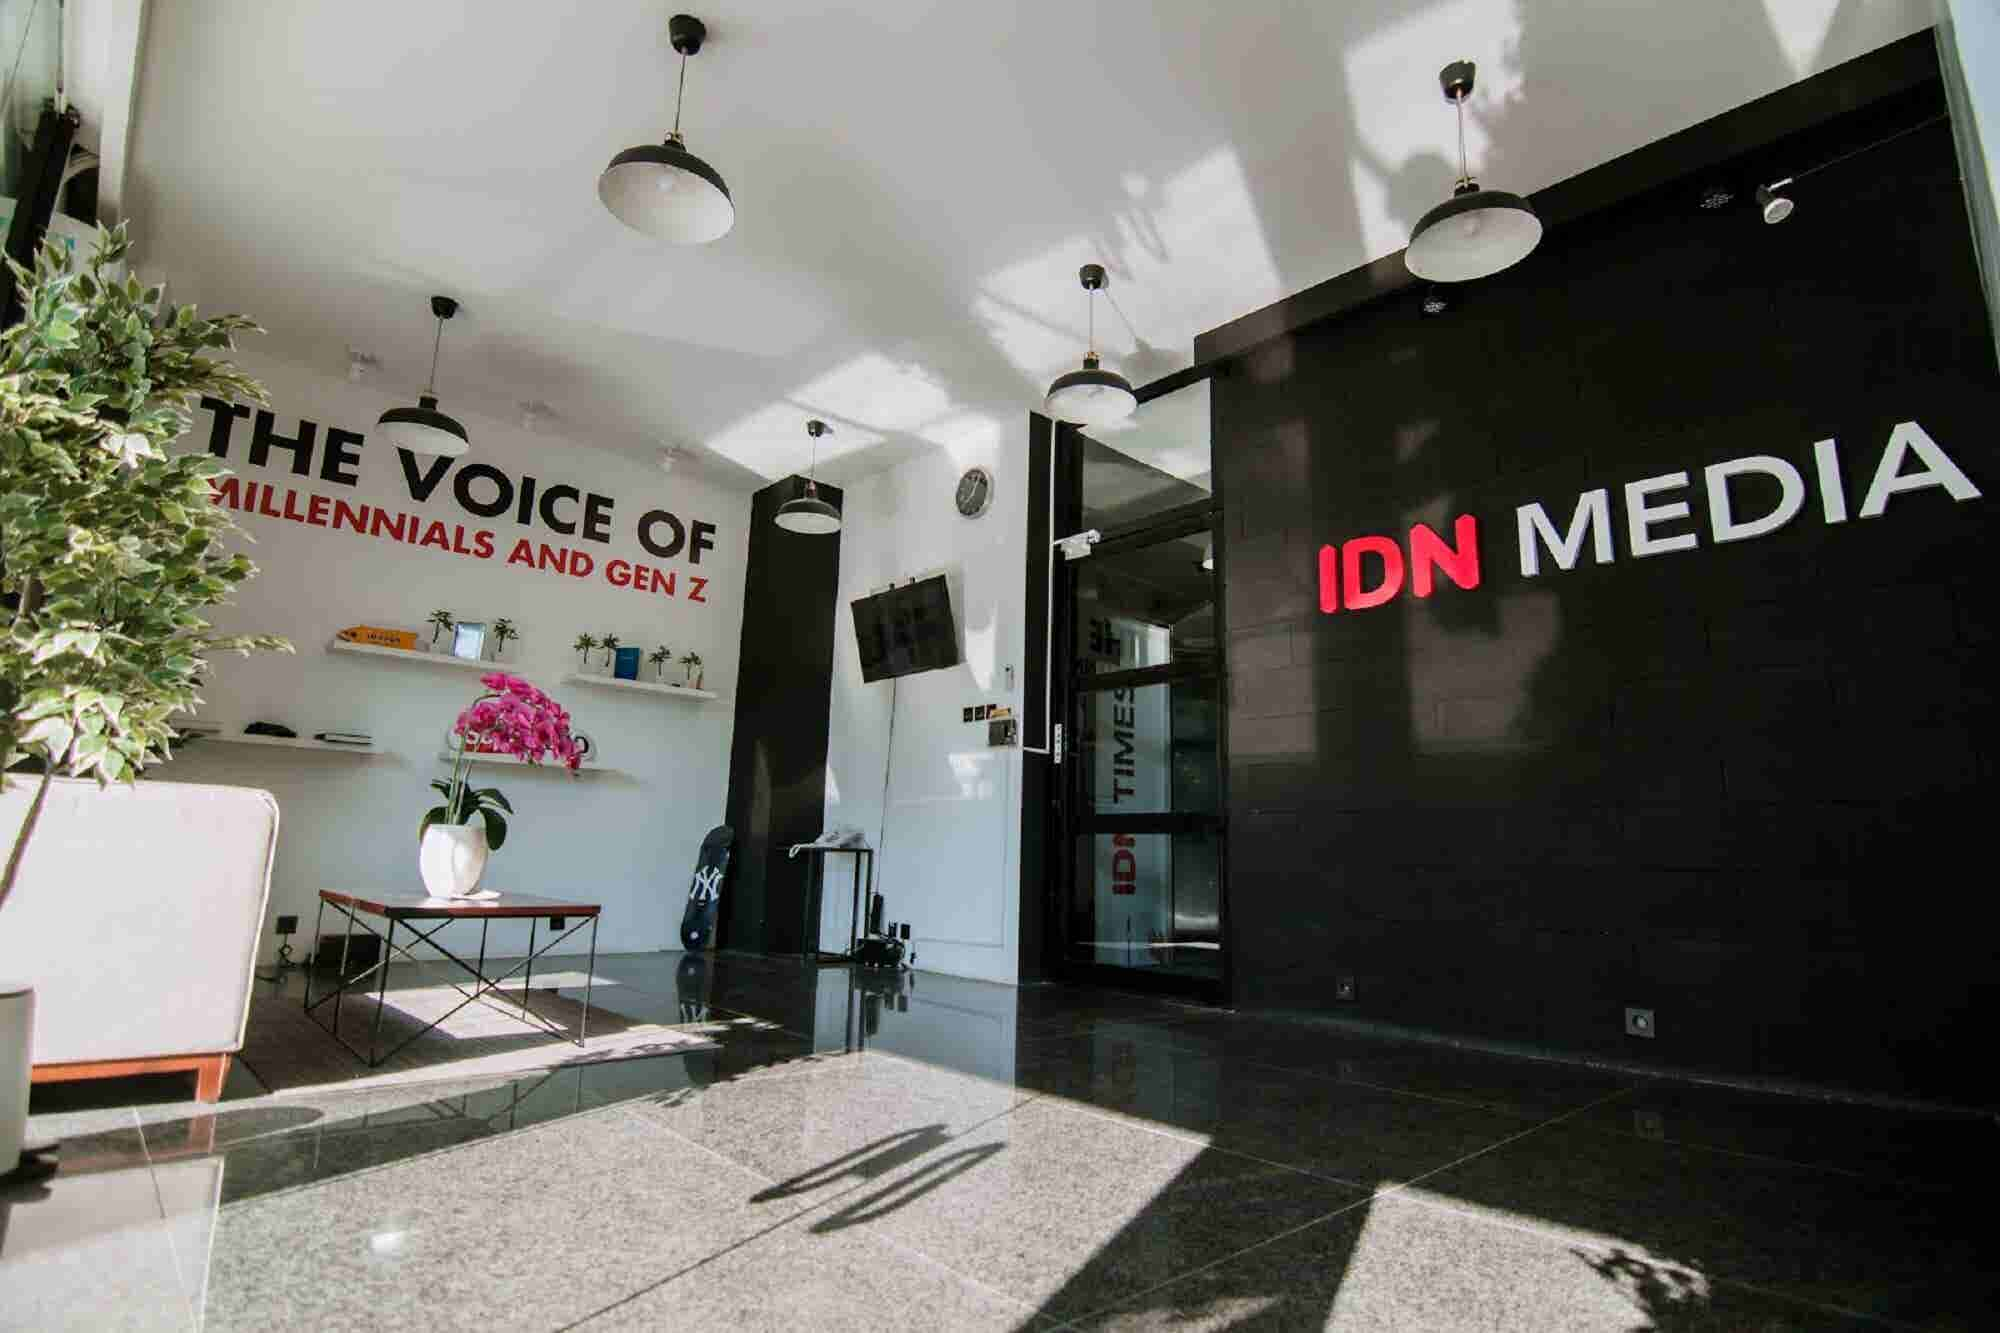 Indonesia's IDN Media Bags Series C Investment In a Round Led by EV Growth